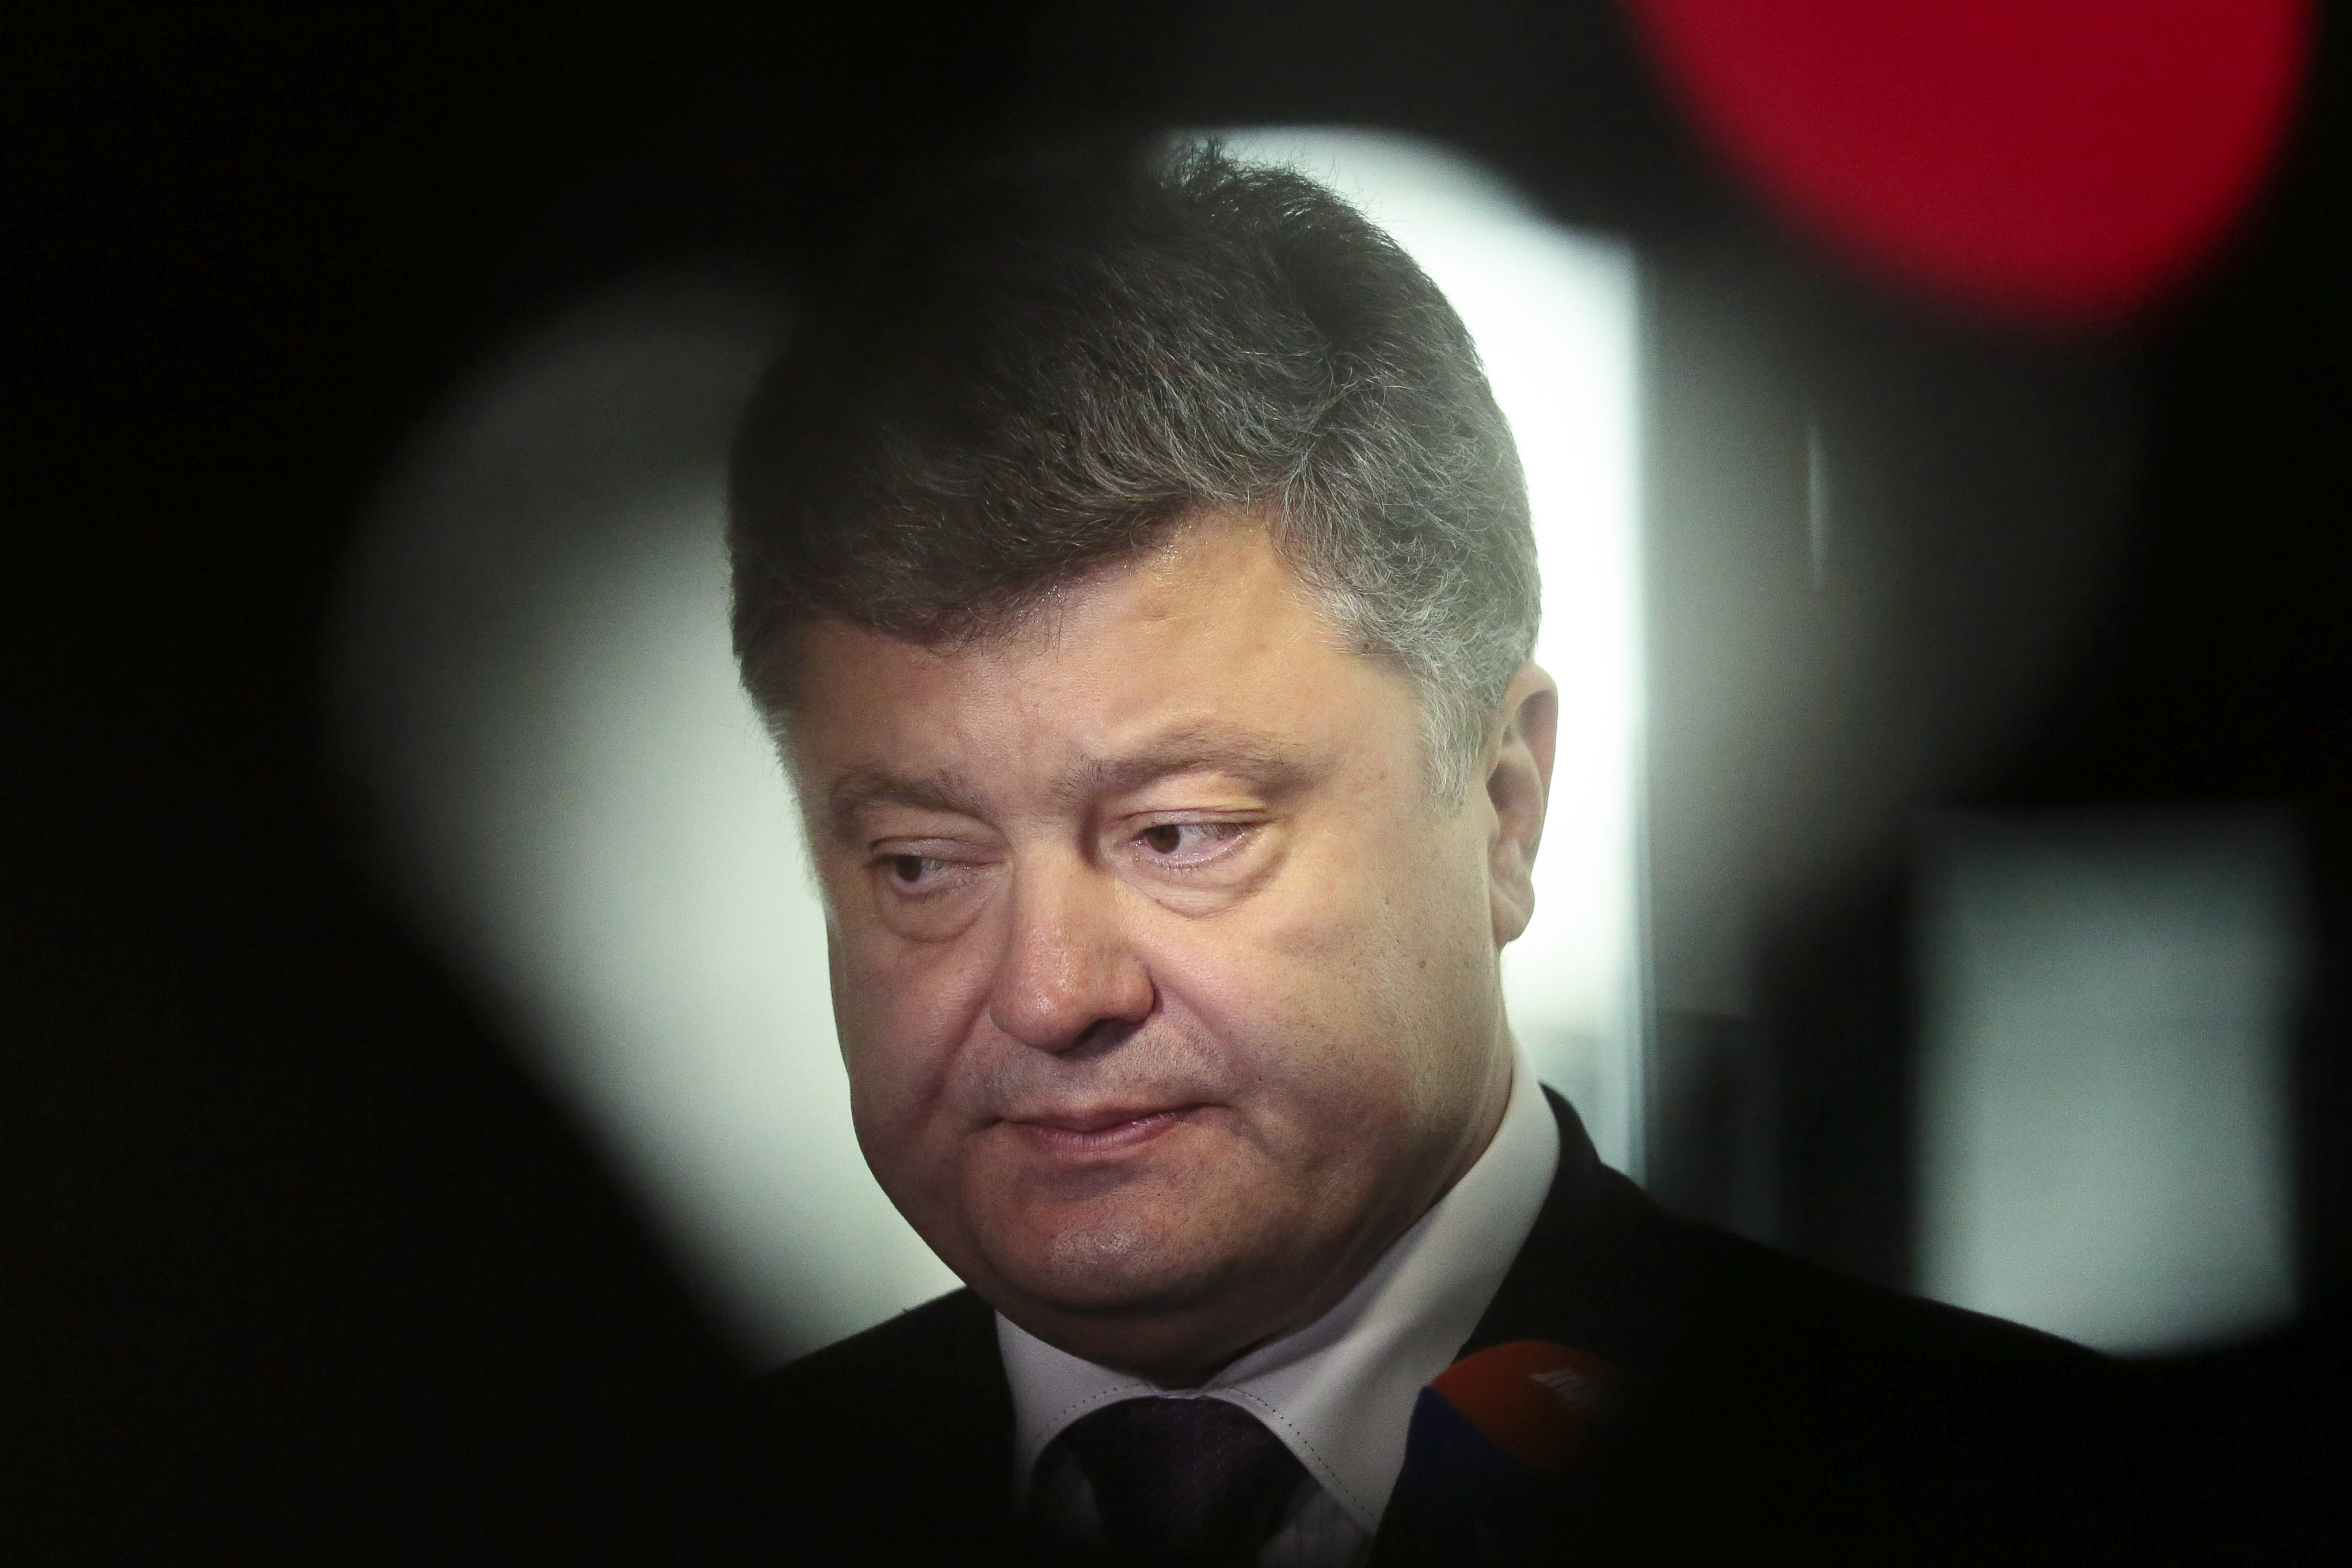 Ukrainian presidential candidate and businessman Petro Poroshenko briefs the media after a meeting with Germany's Christian Union's faction law makers in Berlin on May 7, 2014.